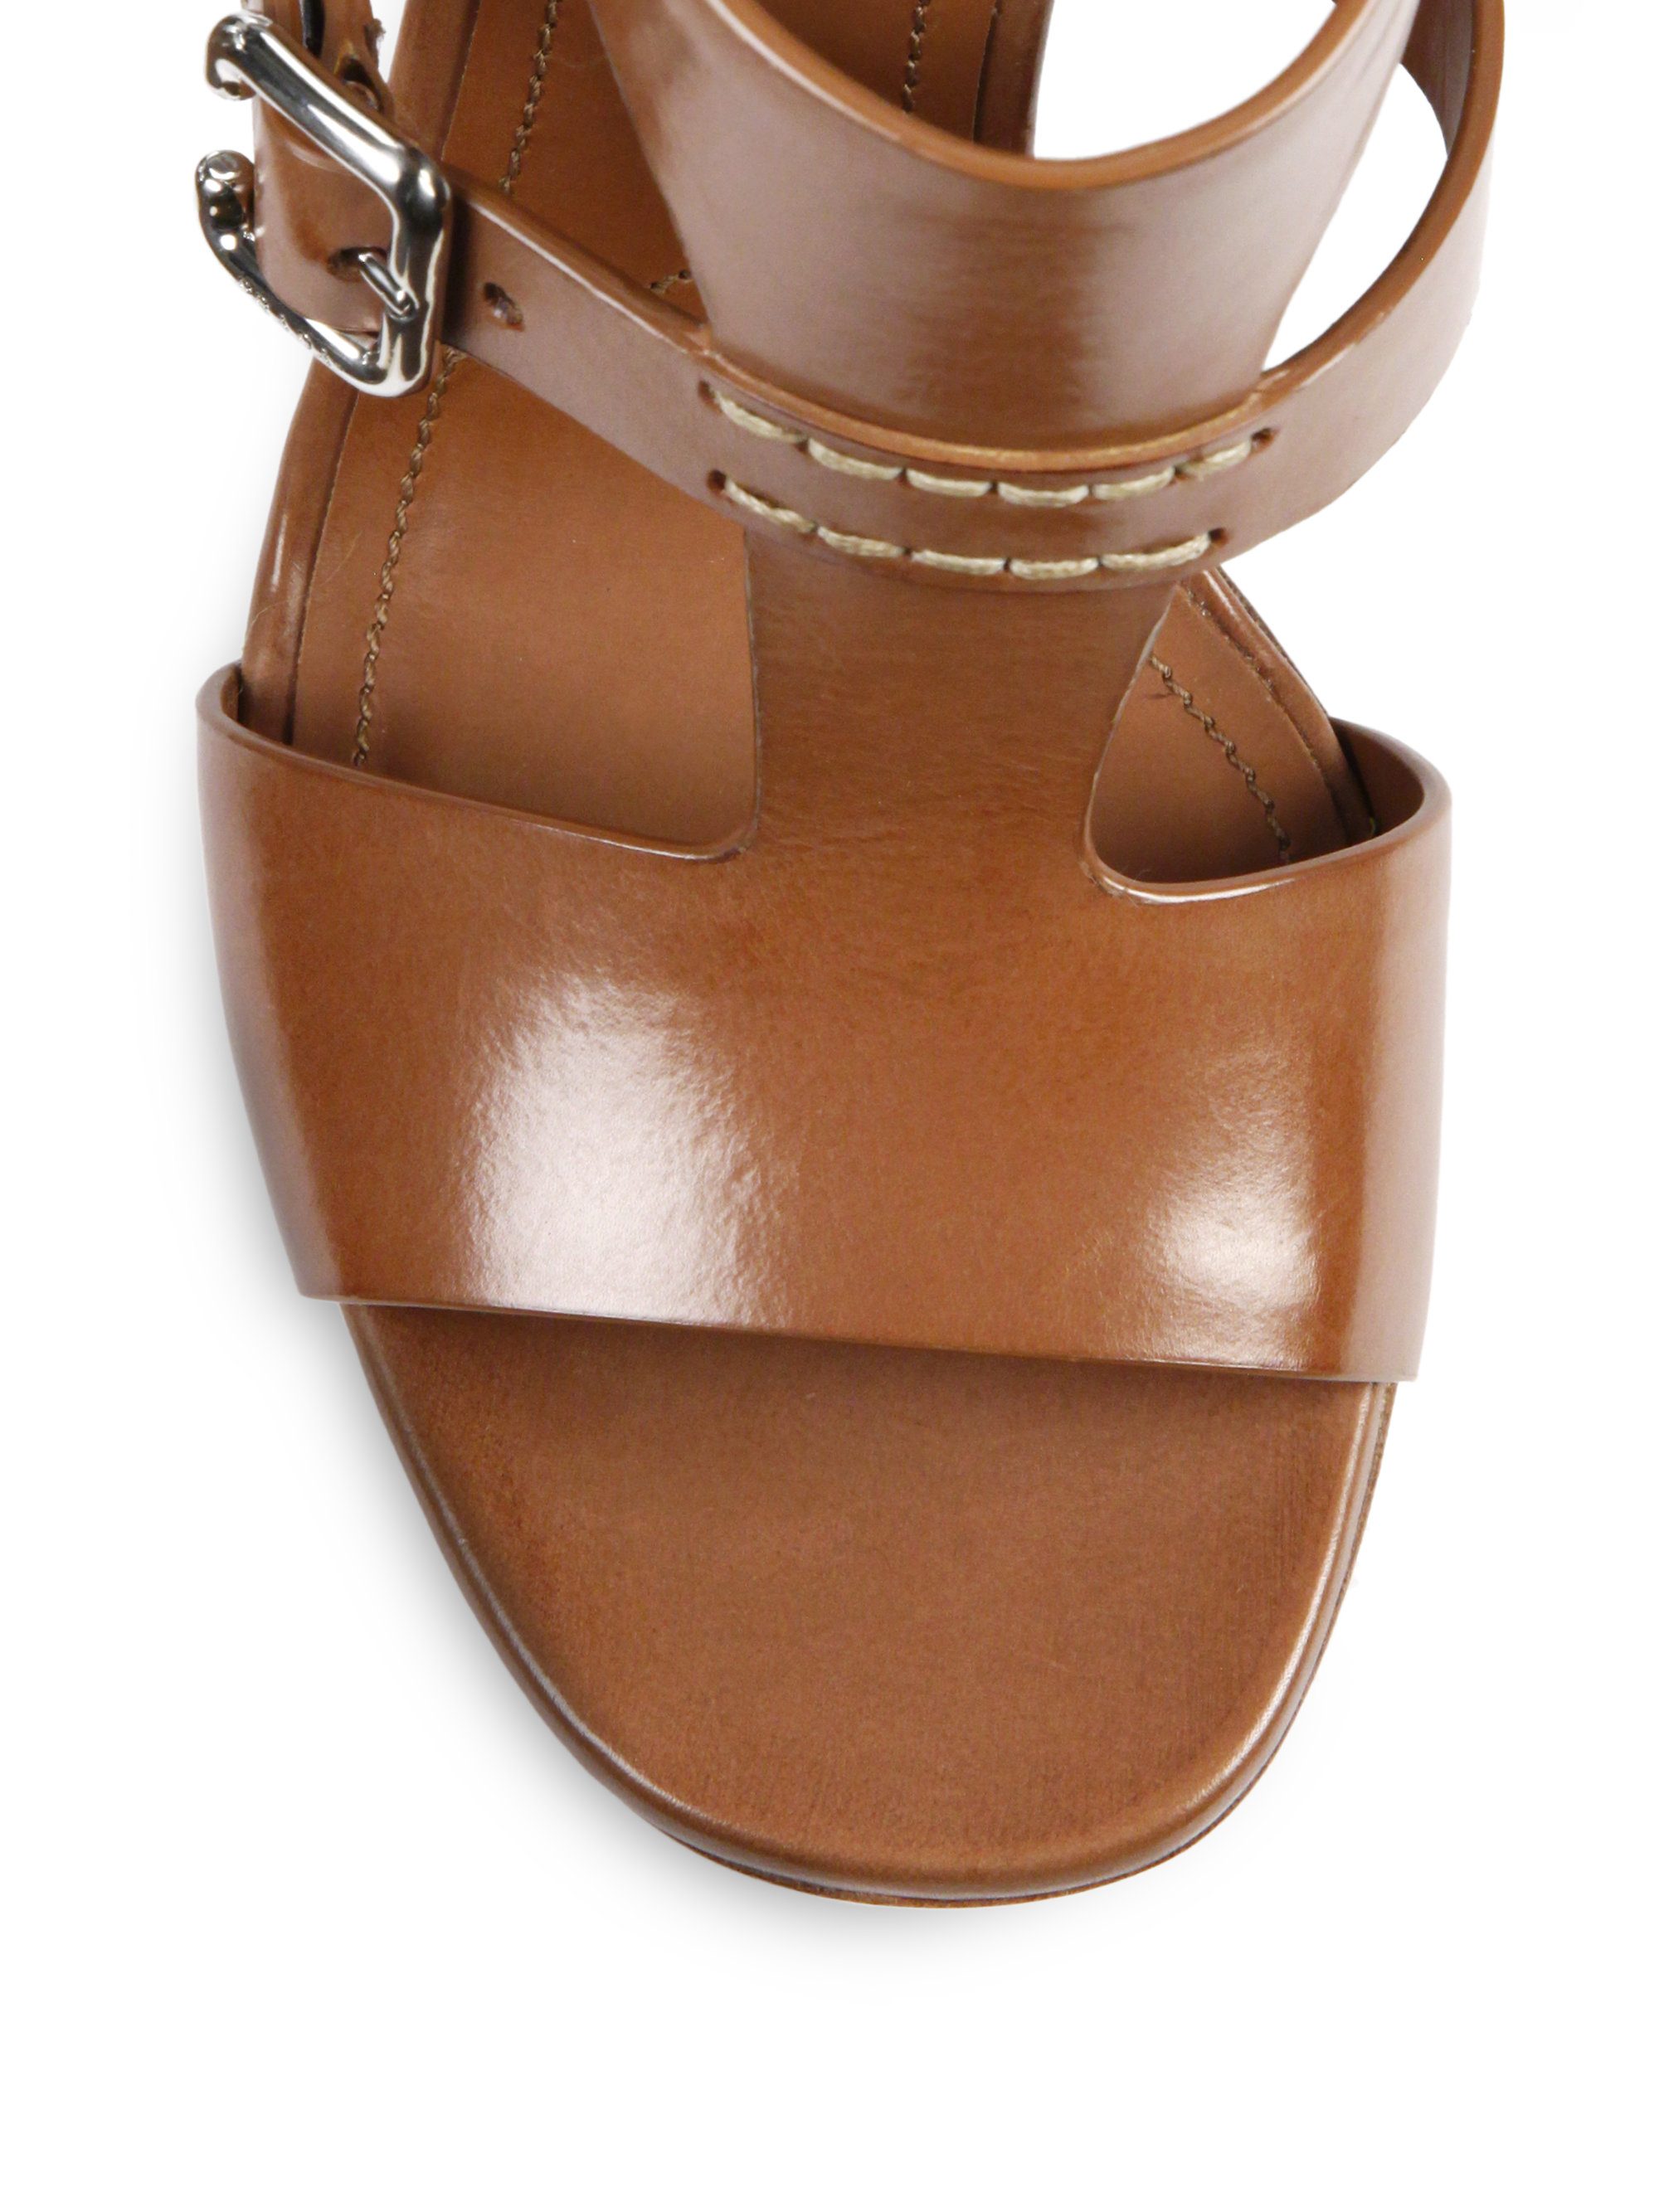 Womens Ankle Strap Slip on Cutout Low Stacked Heel Sandals closed Toe Leather Shoes. from $ 18 5 out of 5 stars 1. Journee Collection. Womens Open-toe Side-zip Stacked Heel Sandals $ 47 5 out of 5 stars 1. CL by Chinese Laundry. Women's Waves Dress Sandal. from $ 14 99 Prime. out of 5 stars Steve Madden.